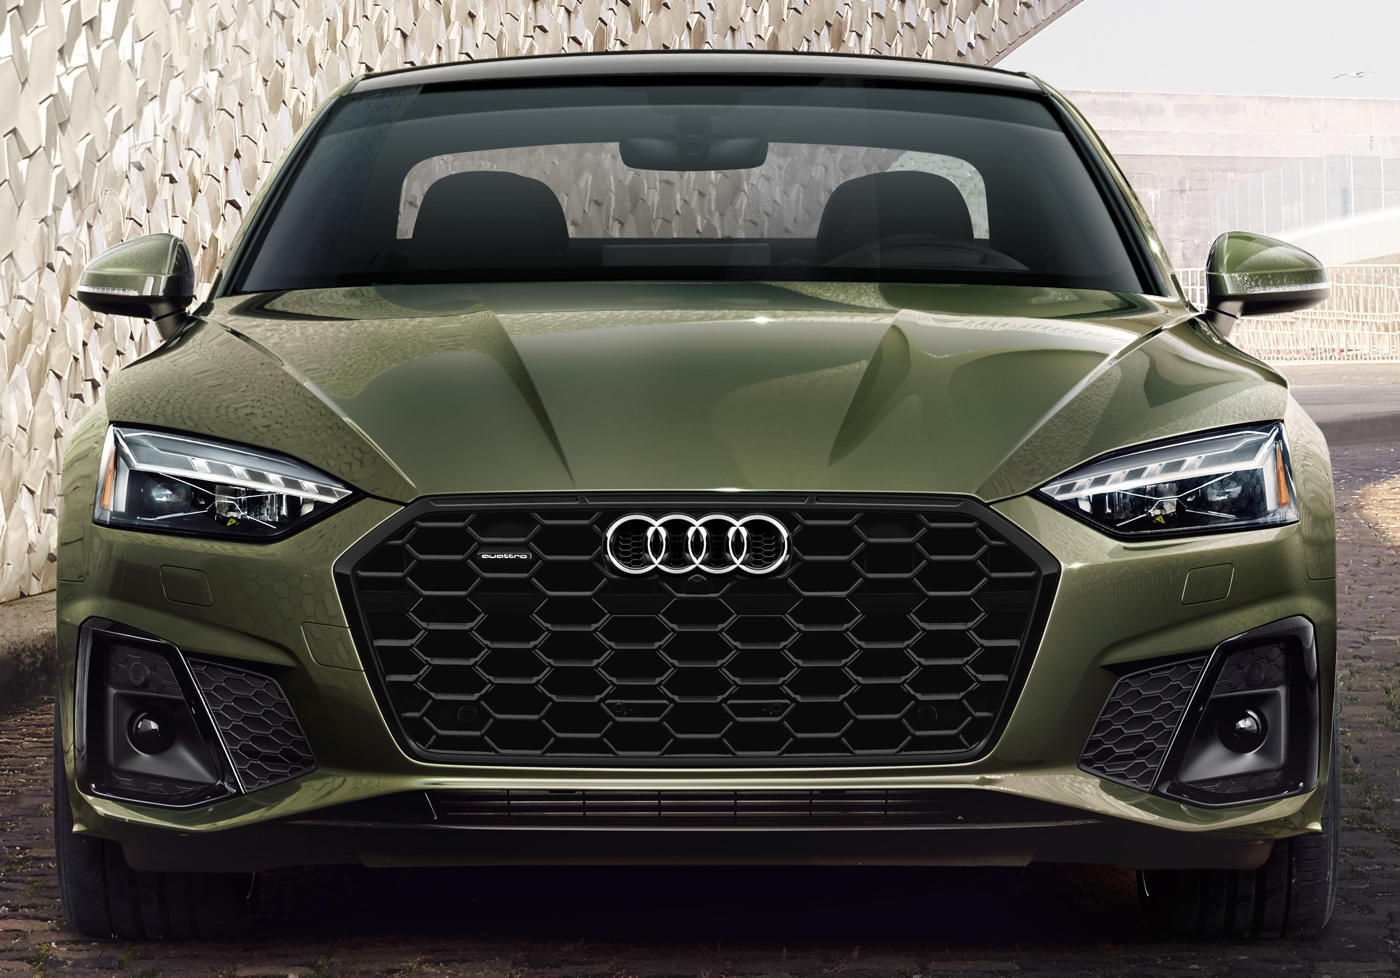 2020 Audi A5 from Audi News